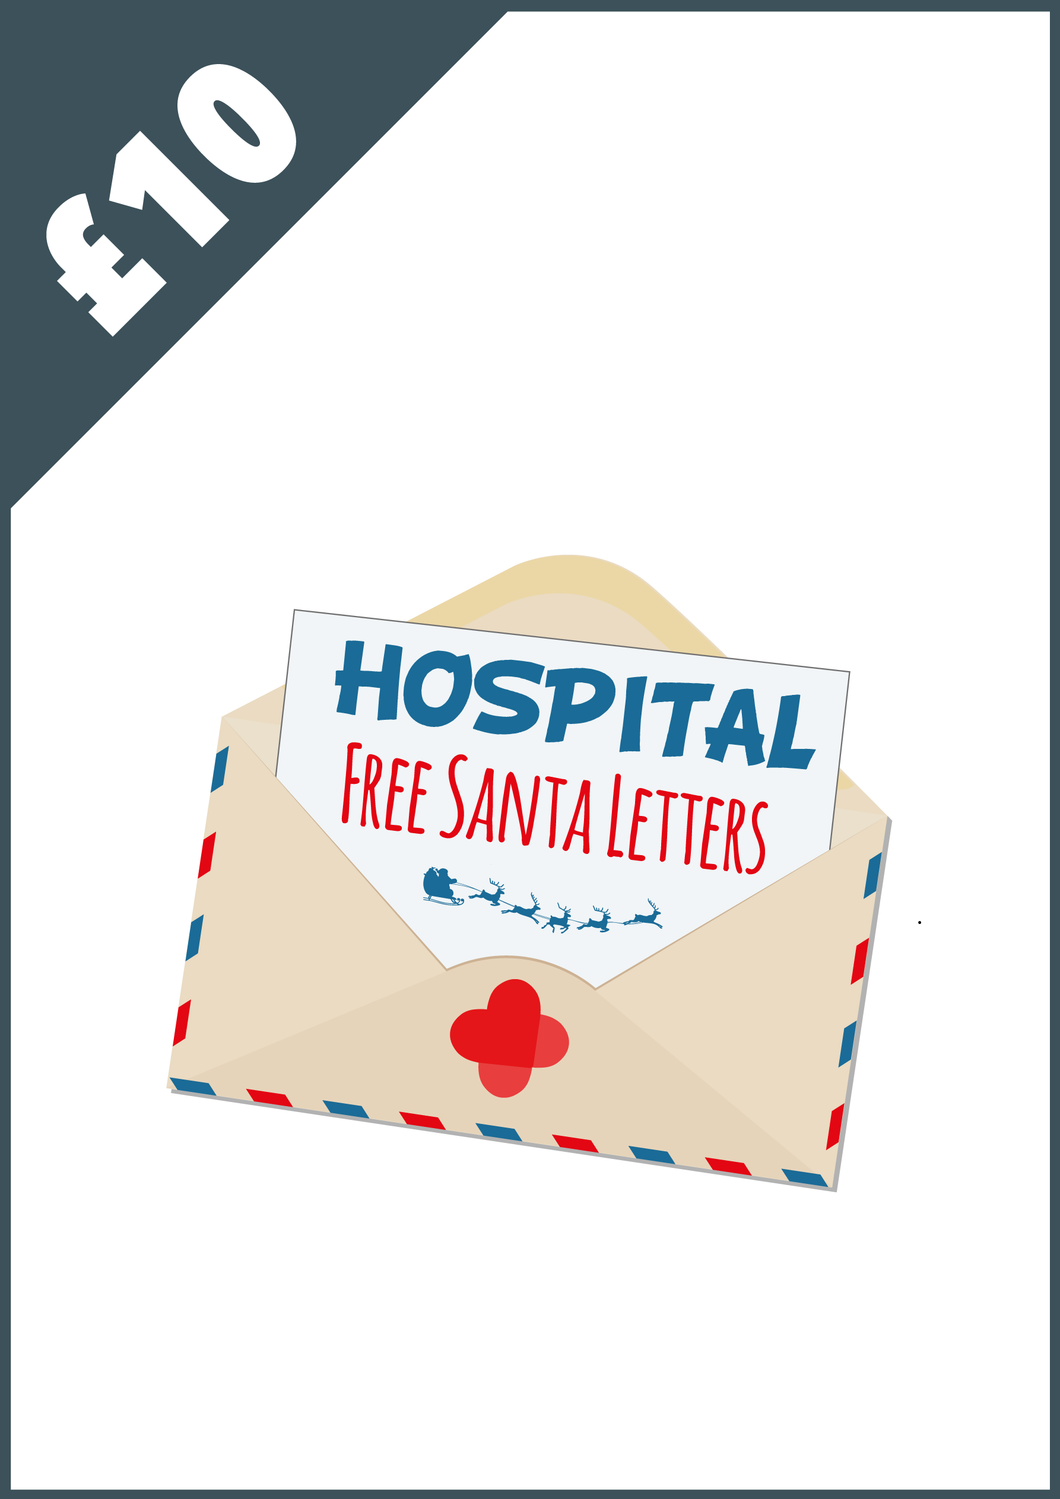 Donate £10 - Free Santa Letters for Children in Hospital